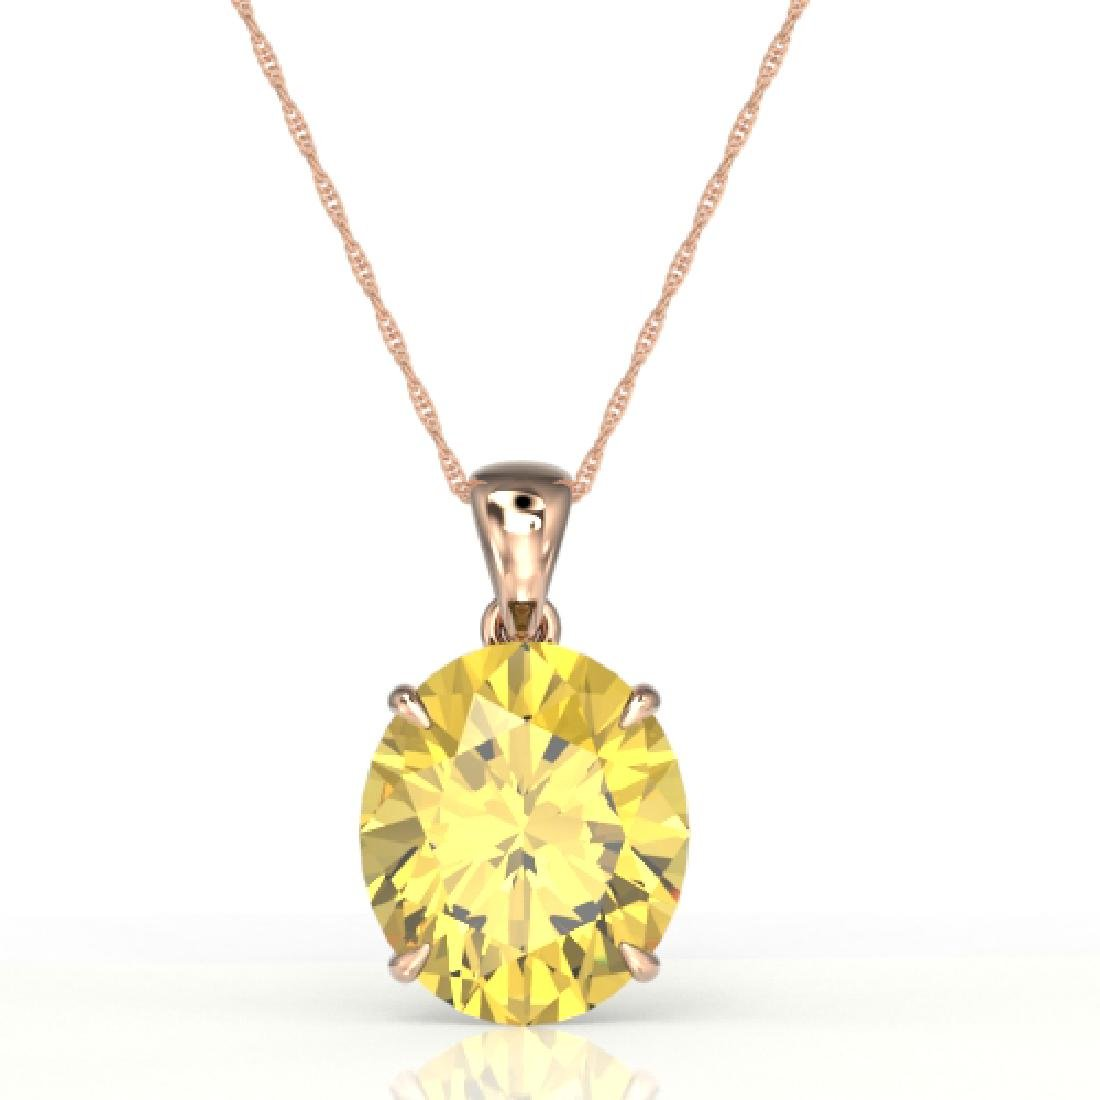 9 CTW Citrine Designer Solitaire Necklace 14K Rose Gold - 2